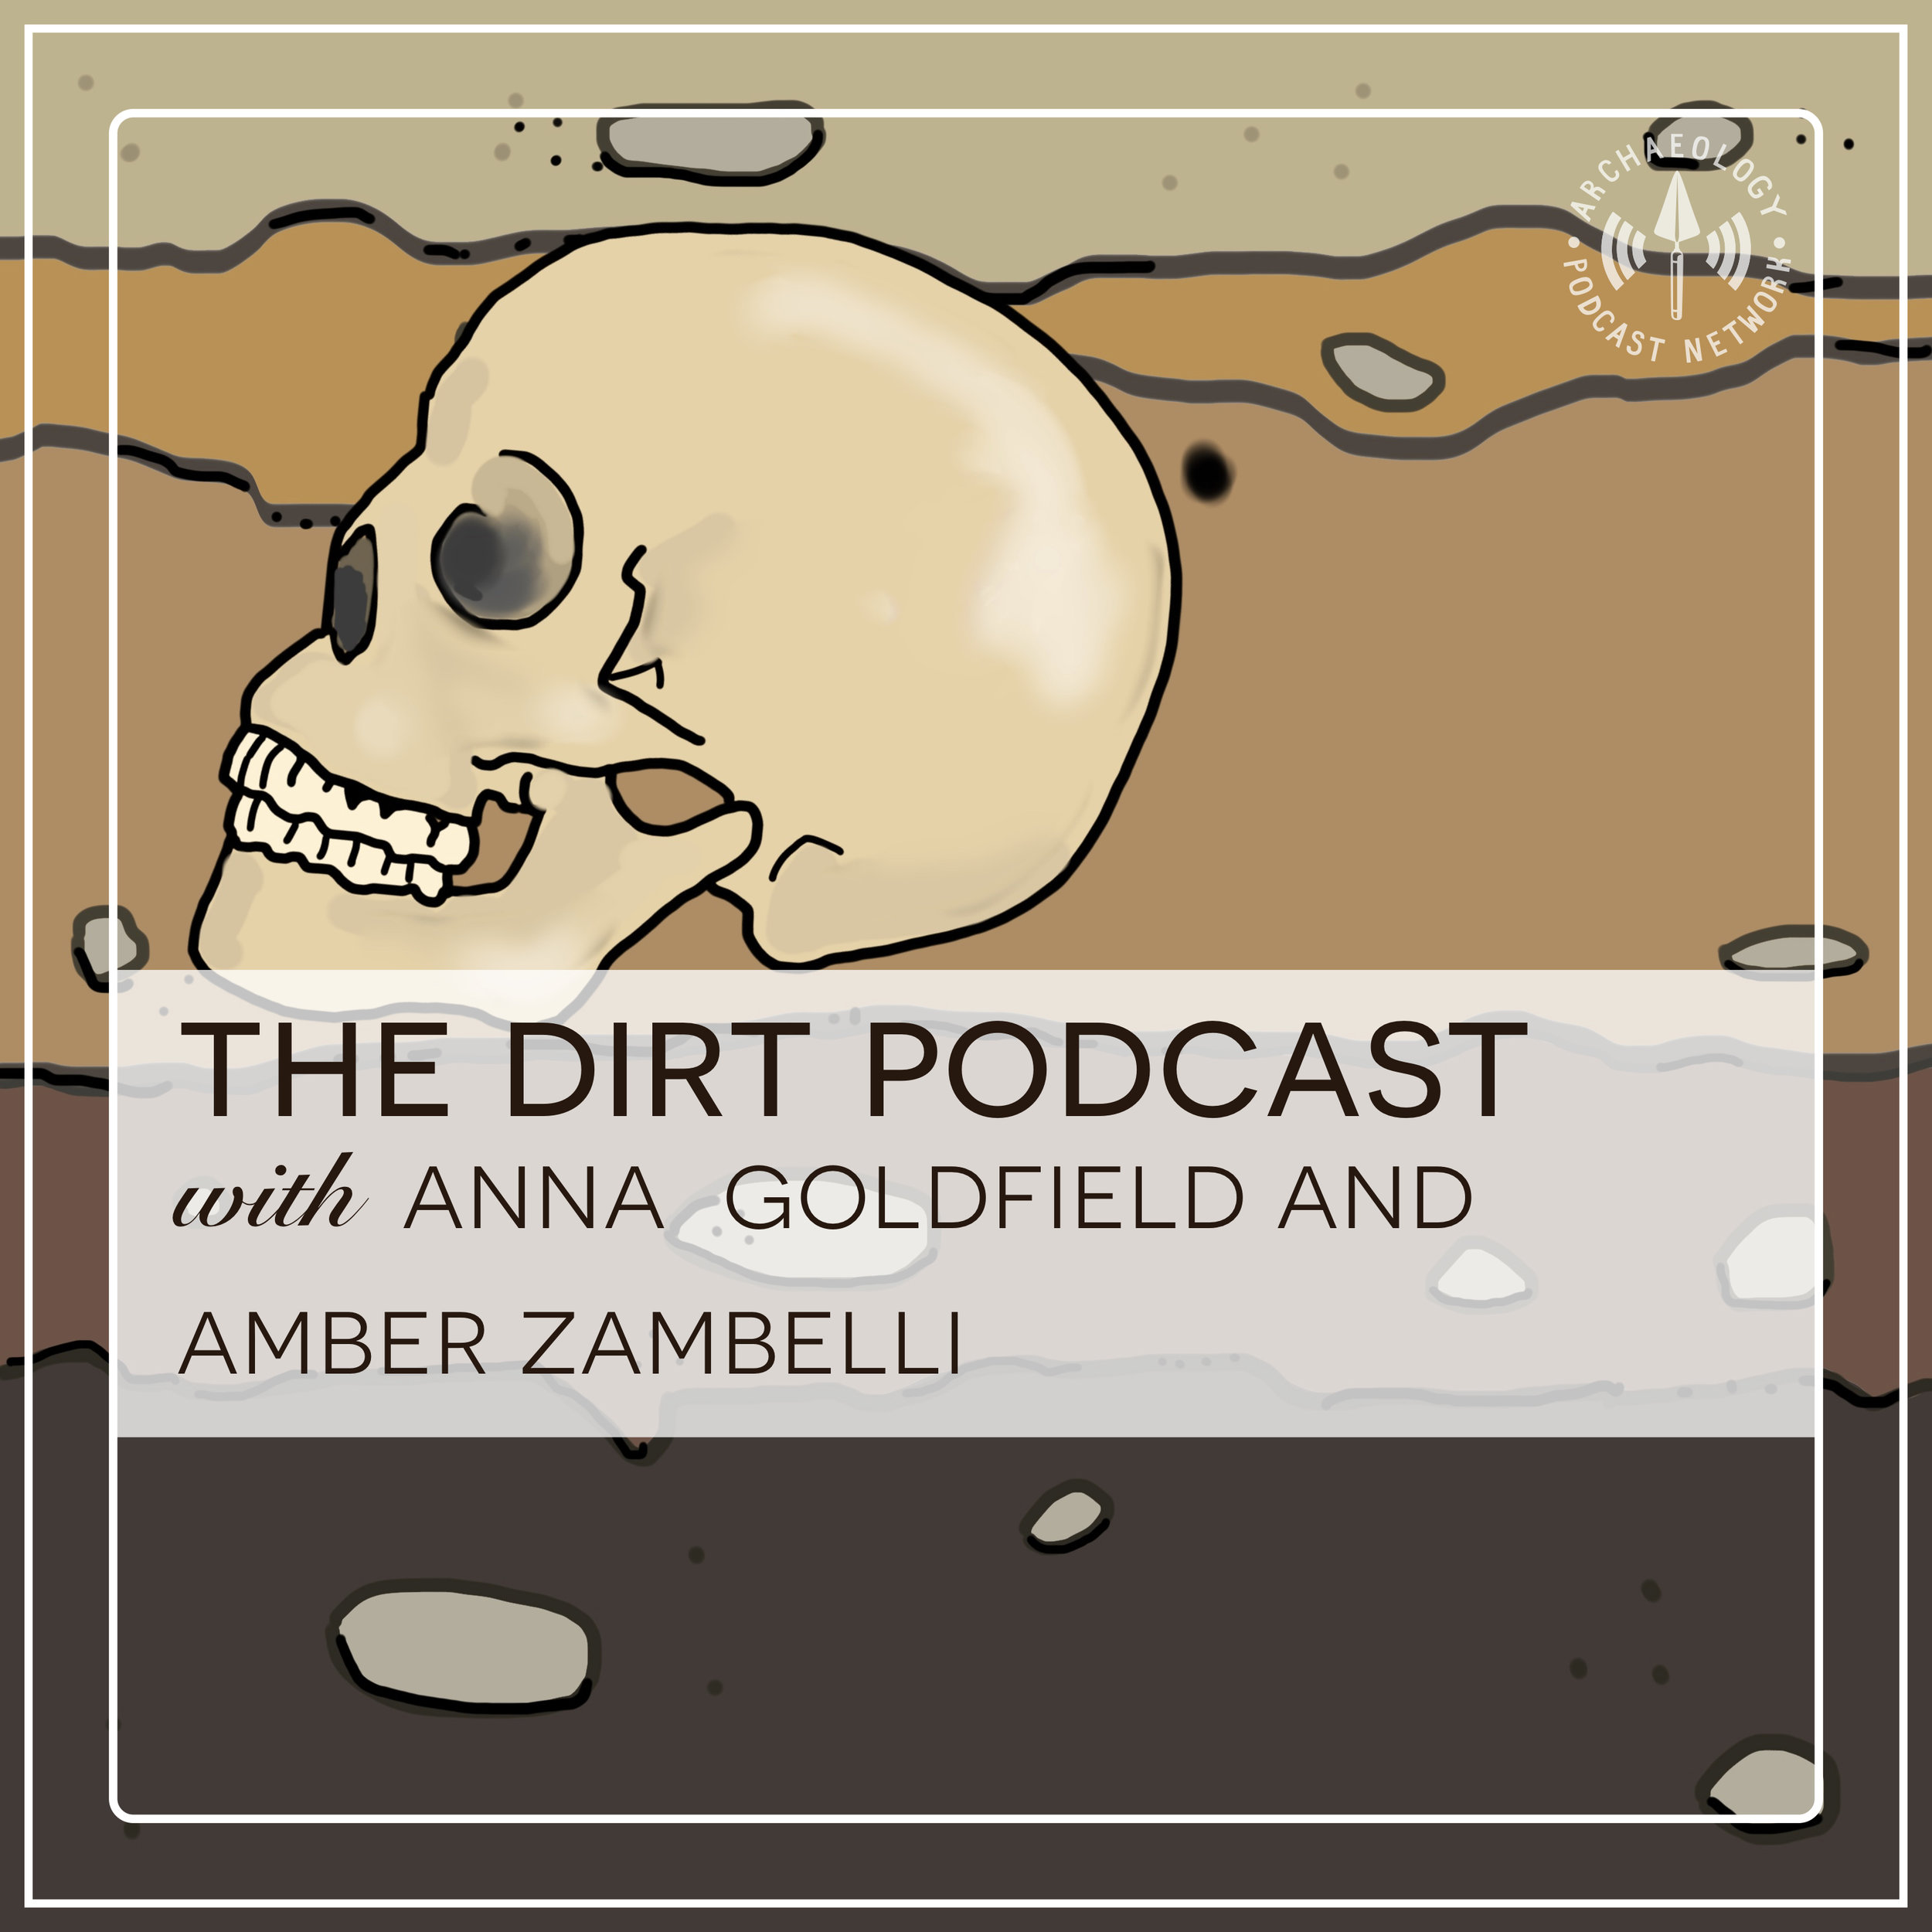 The Dirt Podcast.jpeg